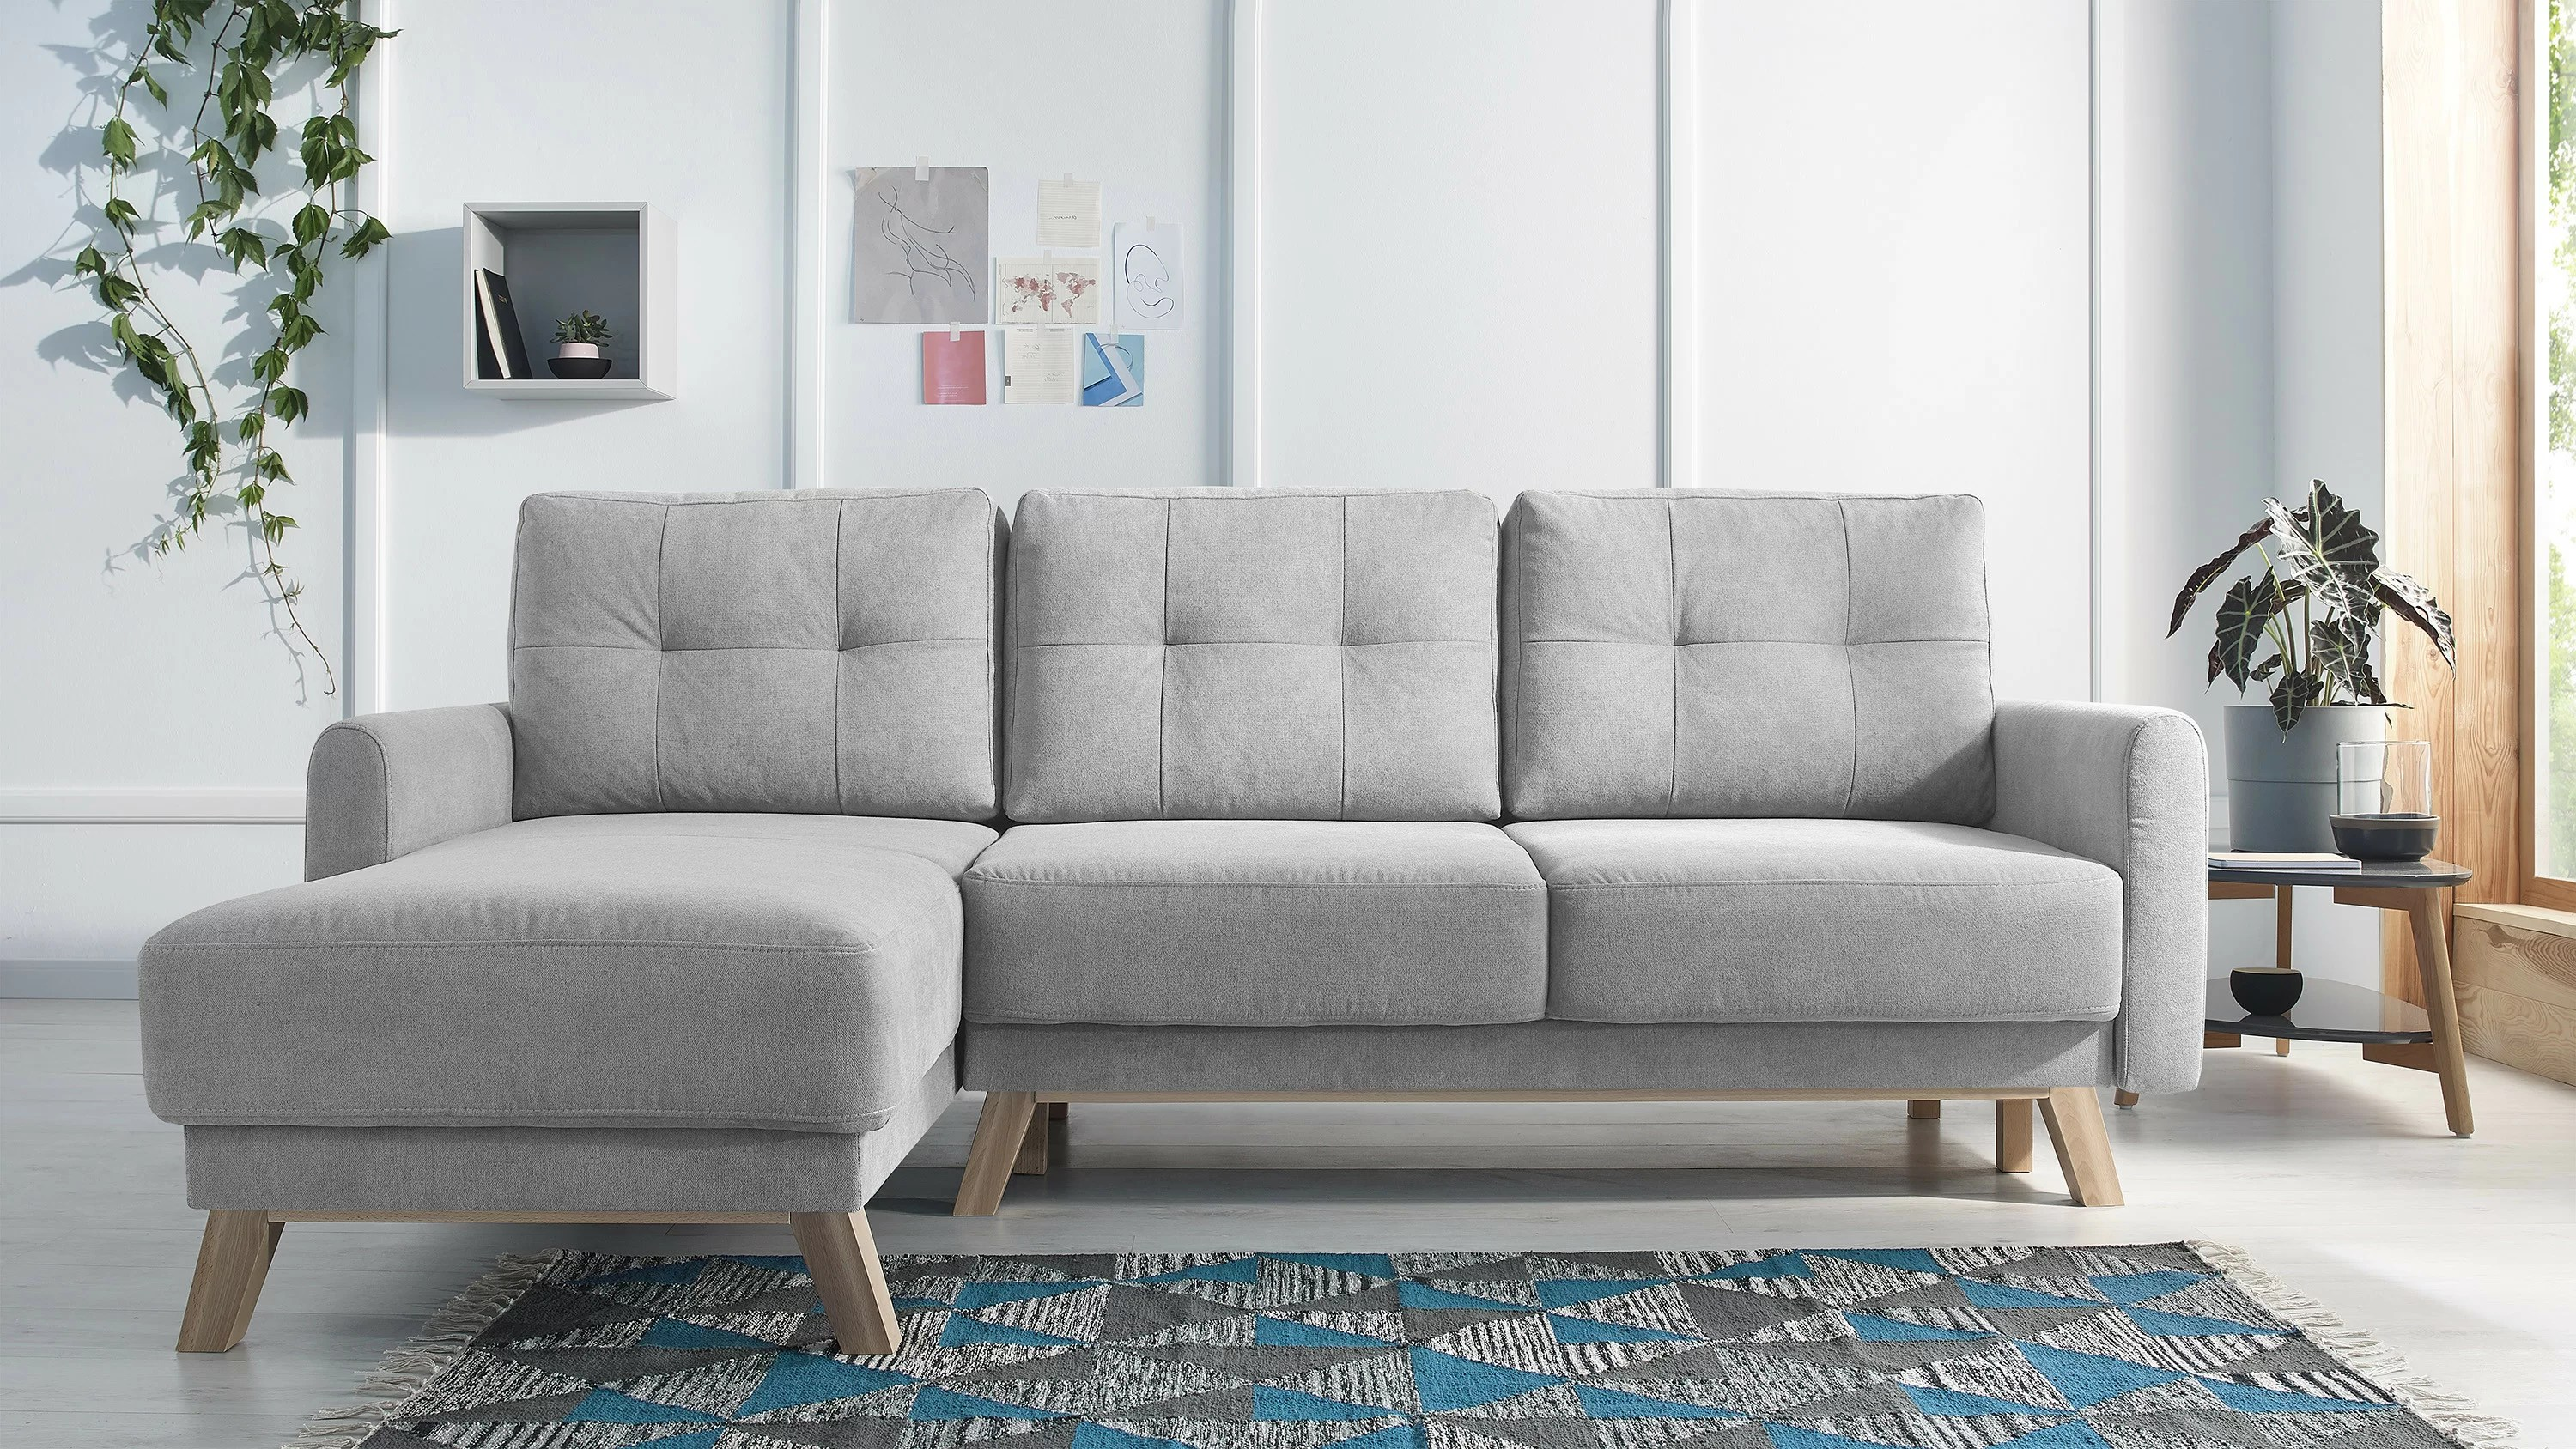 Zipcode Design Ecksofa Annette Mit Bettfunktion Bewertungen Wayfair De